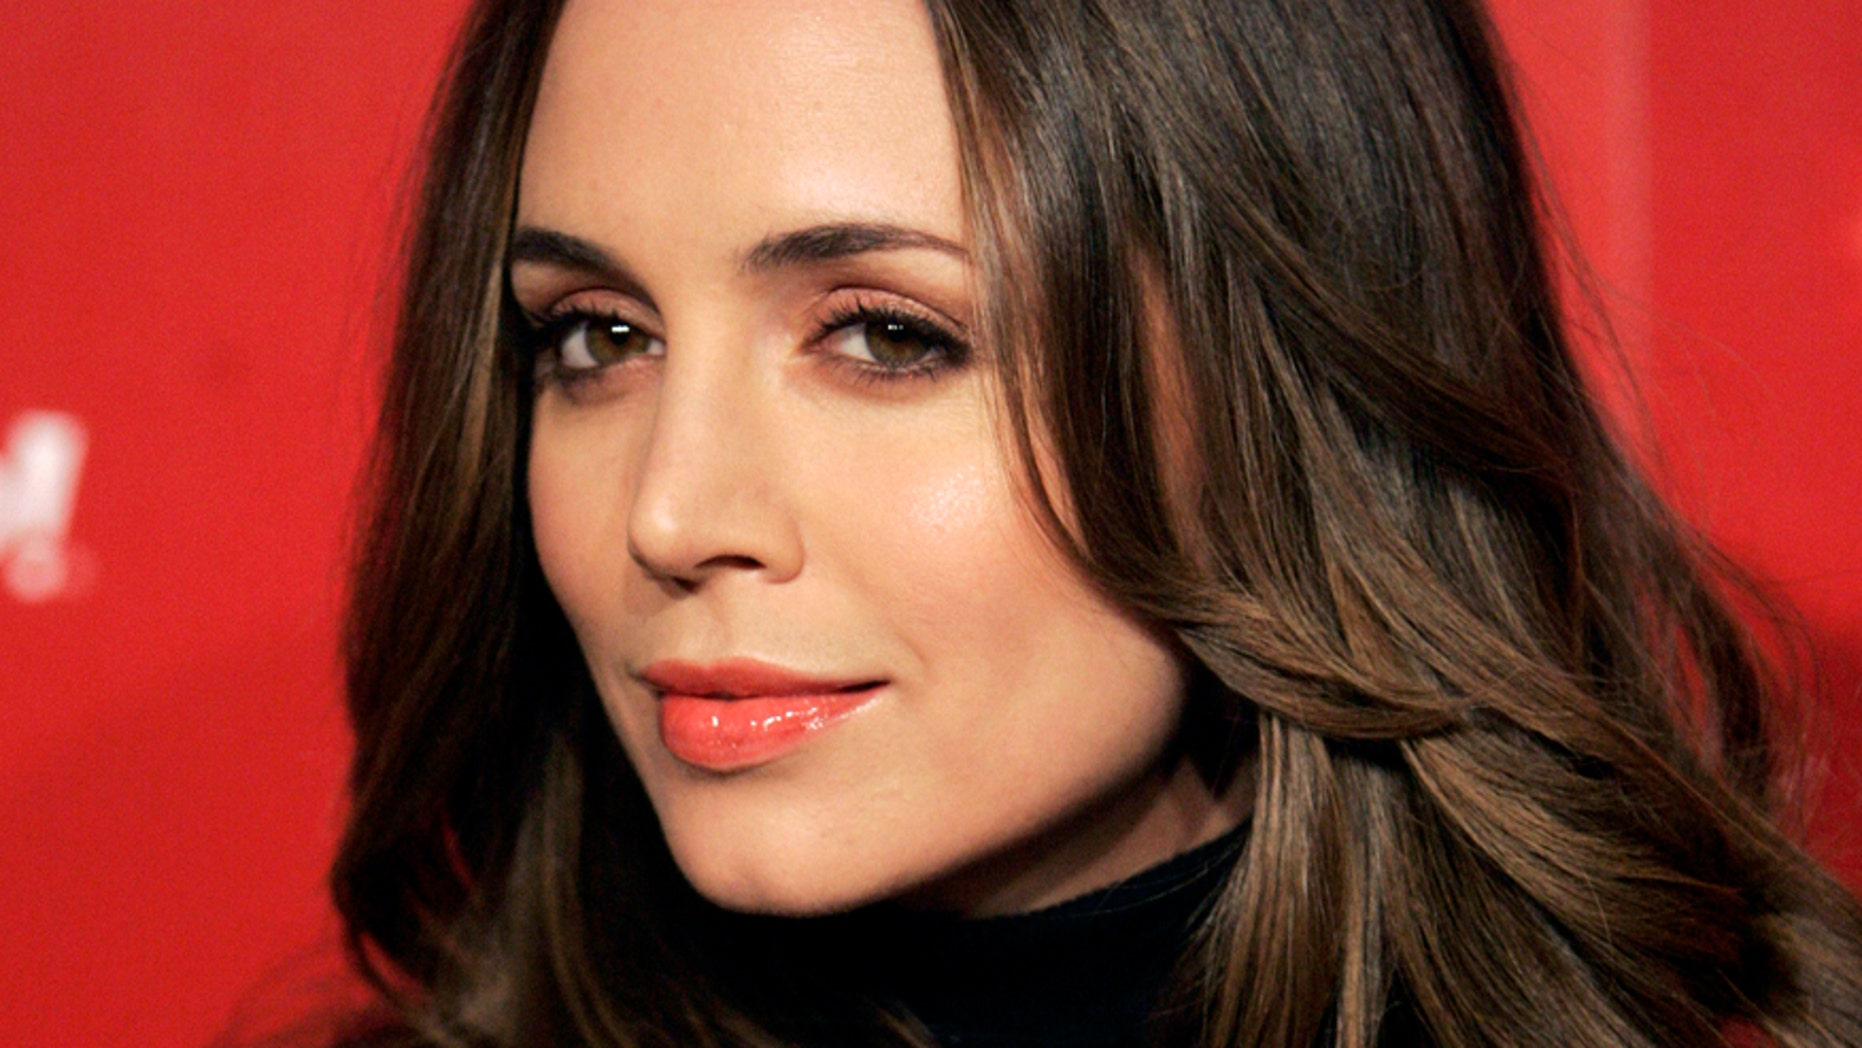 Eliza Dushku poses at the US Weekly Fall Hot Hollywood Issue party in West Hollywood, California November 18, 2009. The actress recently opened up about battling drug and alcohol addiction.